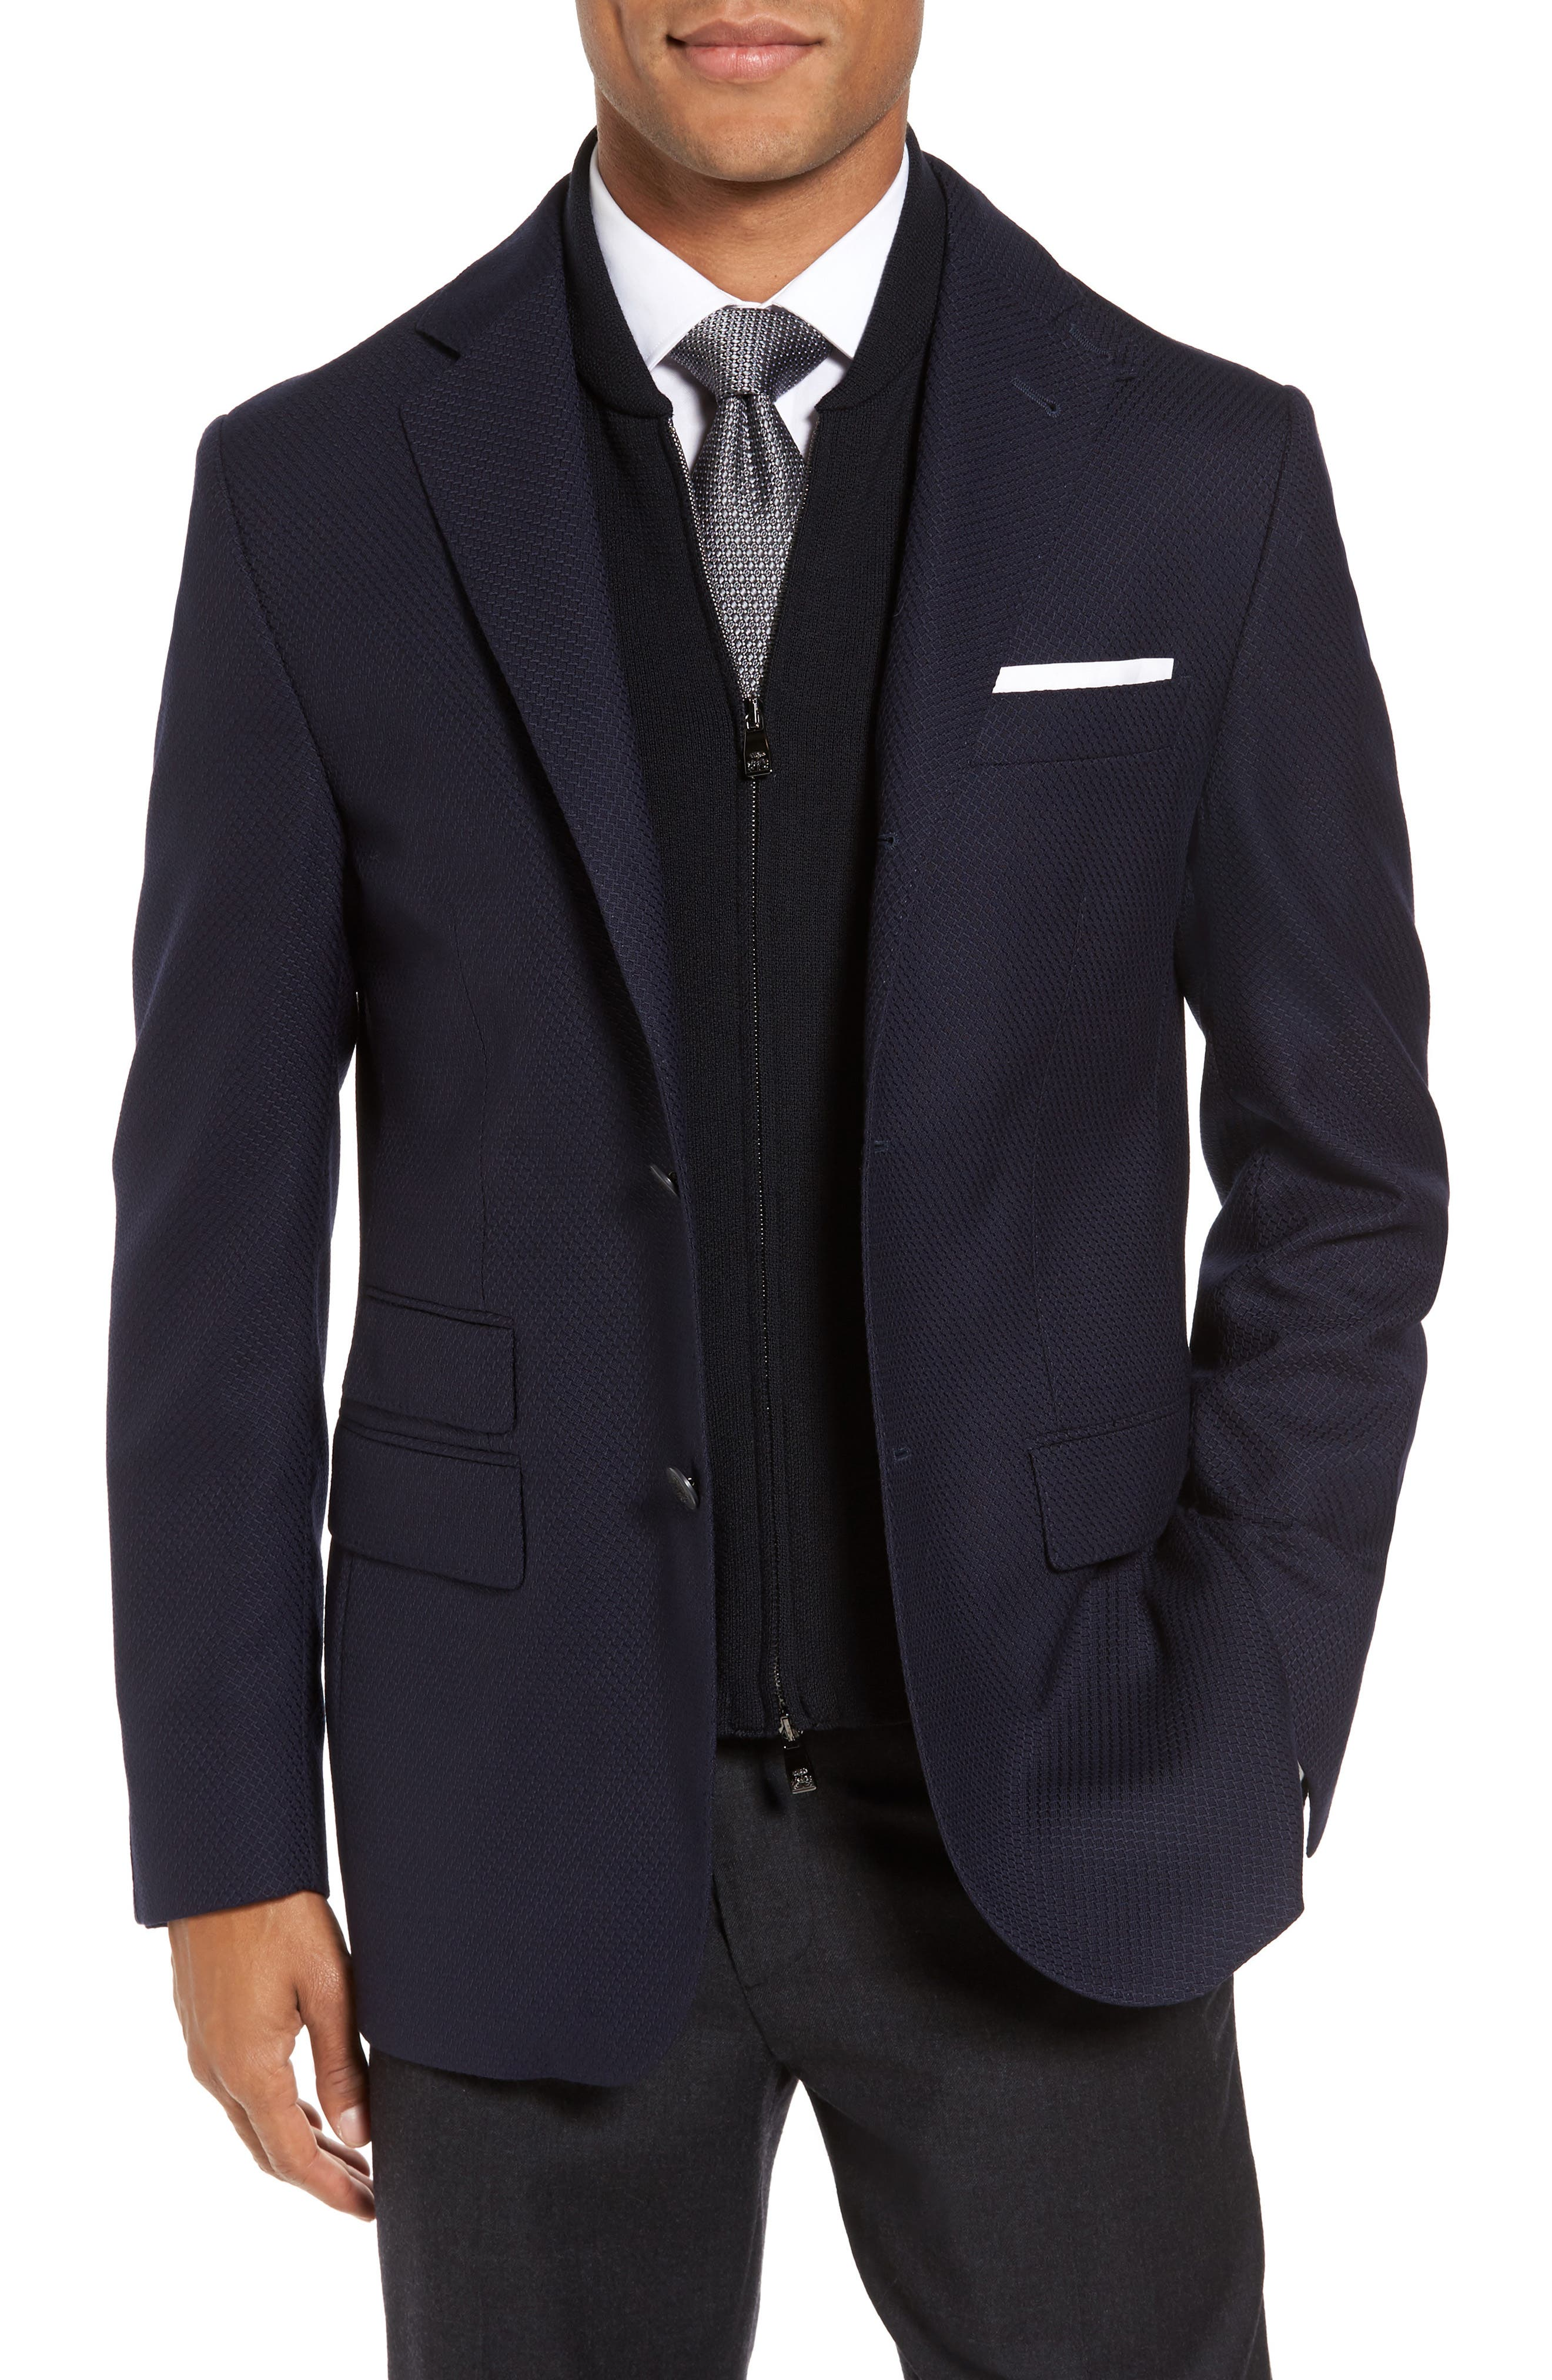 ID Classic Fit Wool Jacket,                         Main,                         color, Ink